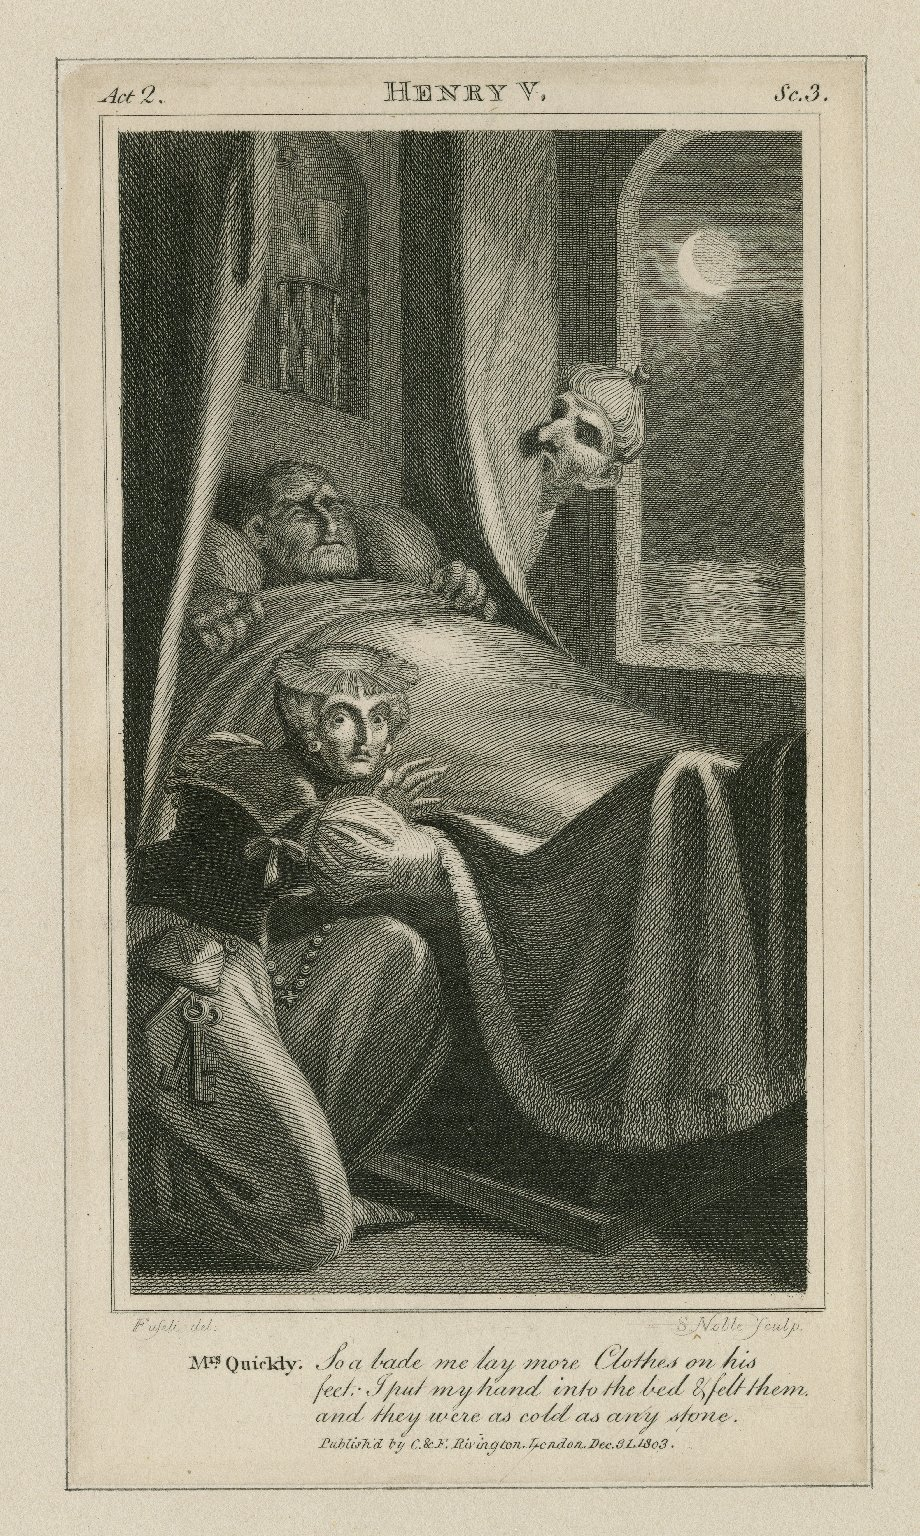 Henry V, act 2, sc. 3, Mrs. Quickly: So a bade me lay more clothes on his feet: I put my hand into the bed... they were as cold as any stone [graphic] / [Henry] Fuseli, del. ; S. Noble, sculp.